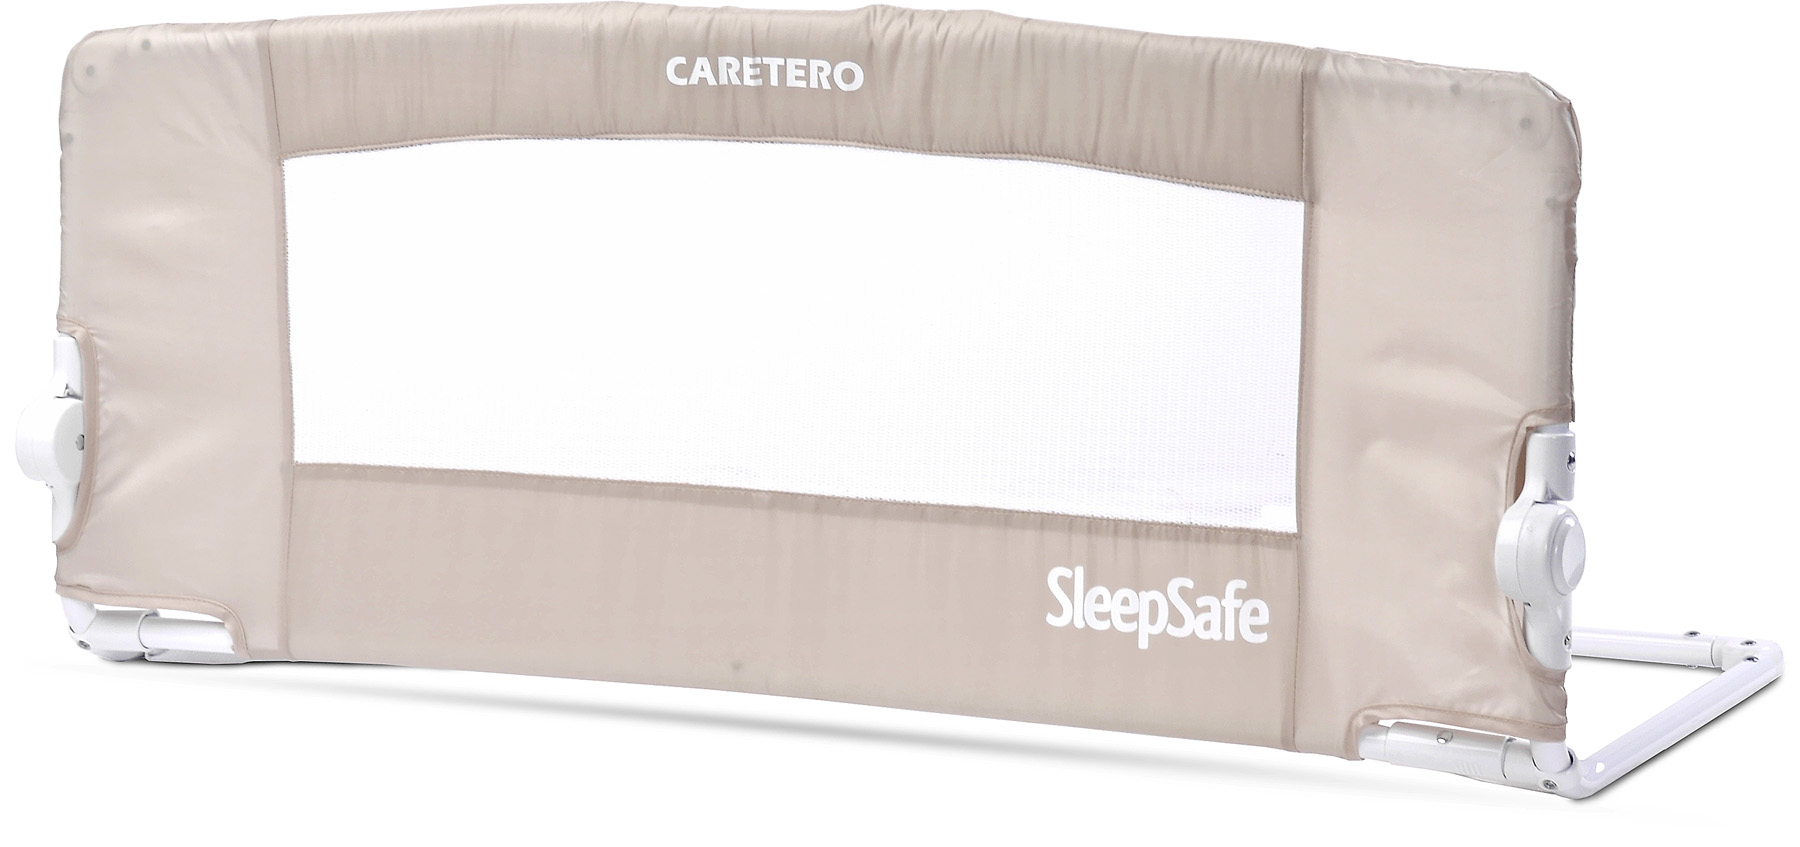 SleepSafe bed barrier